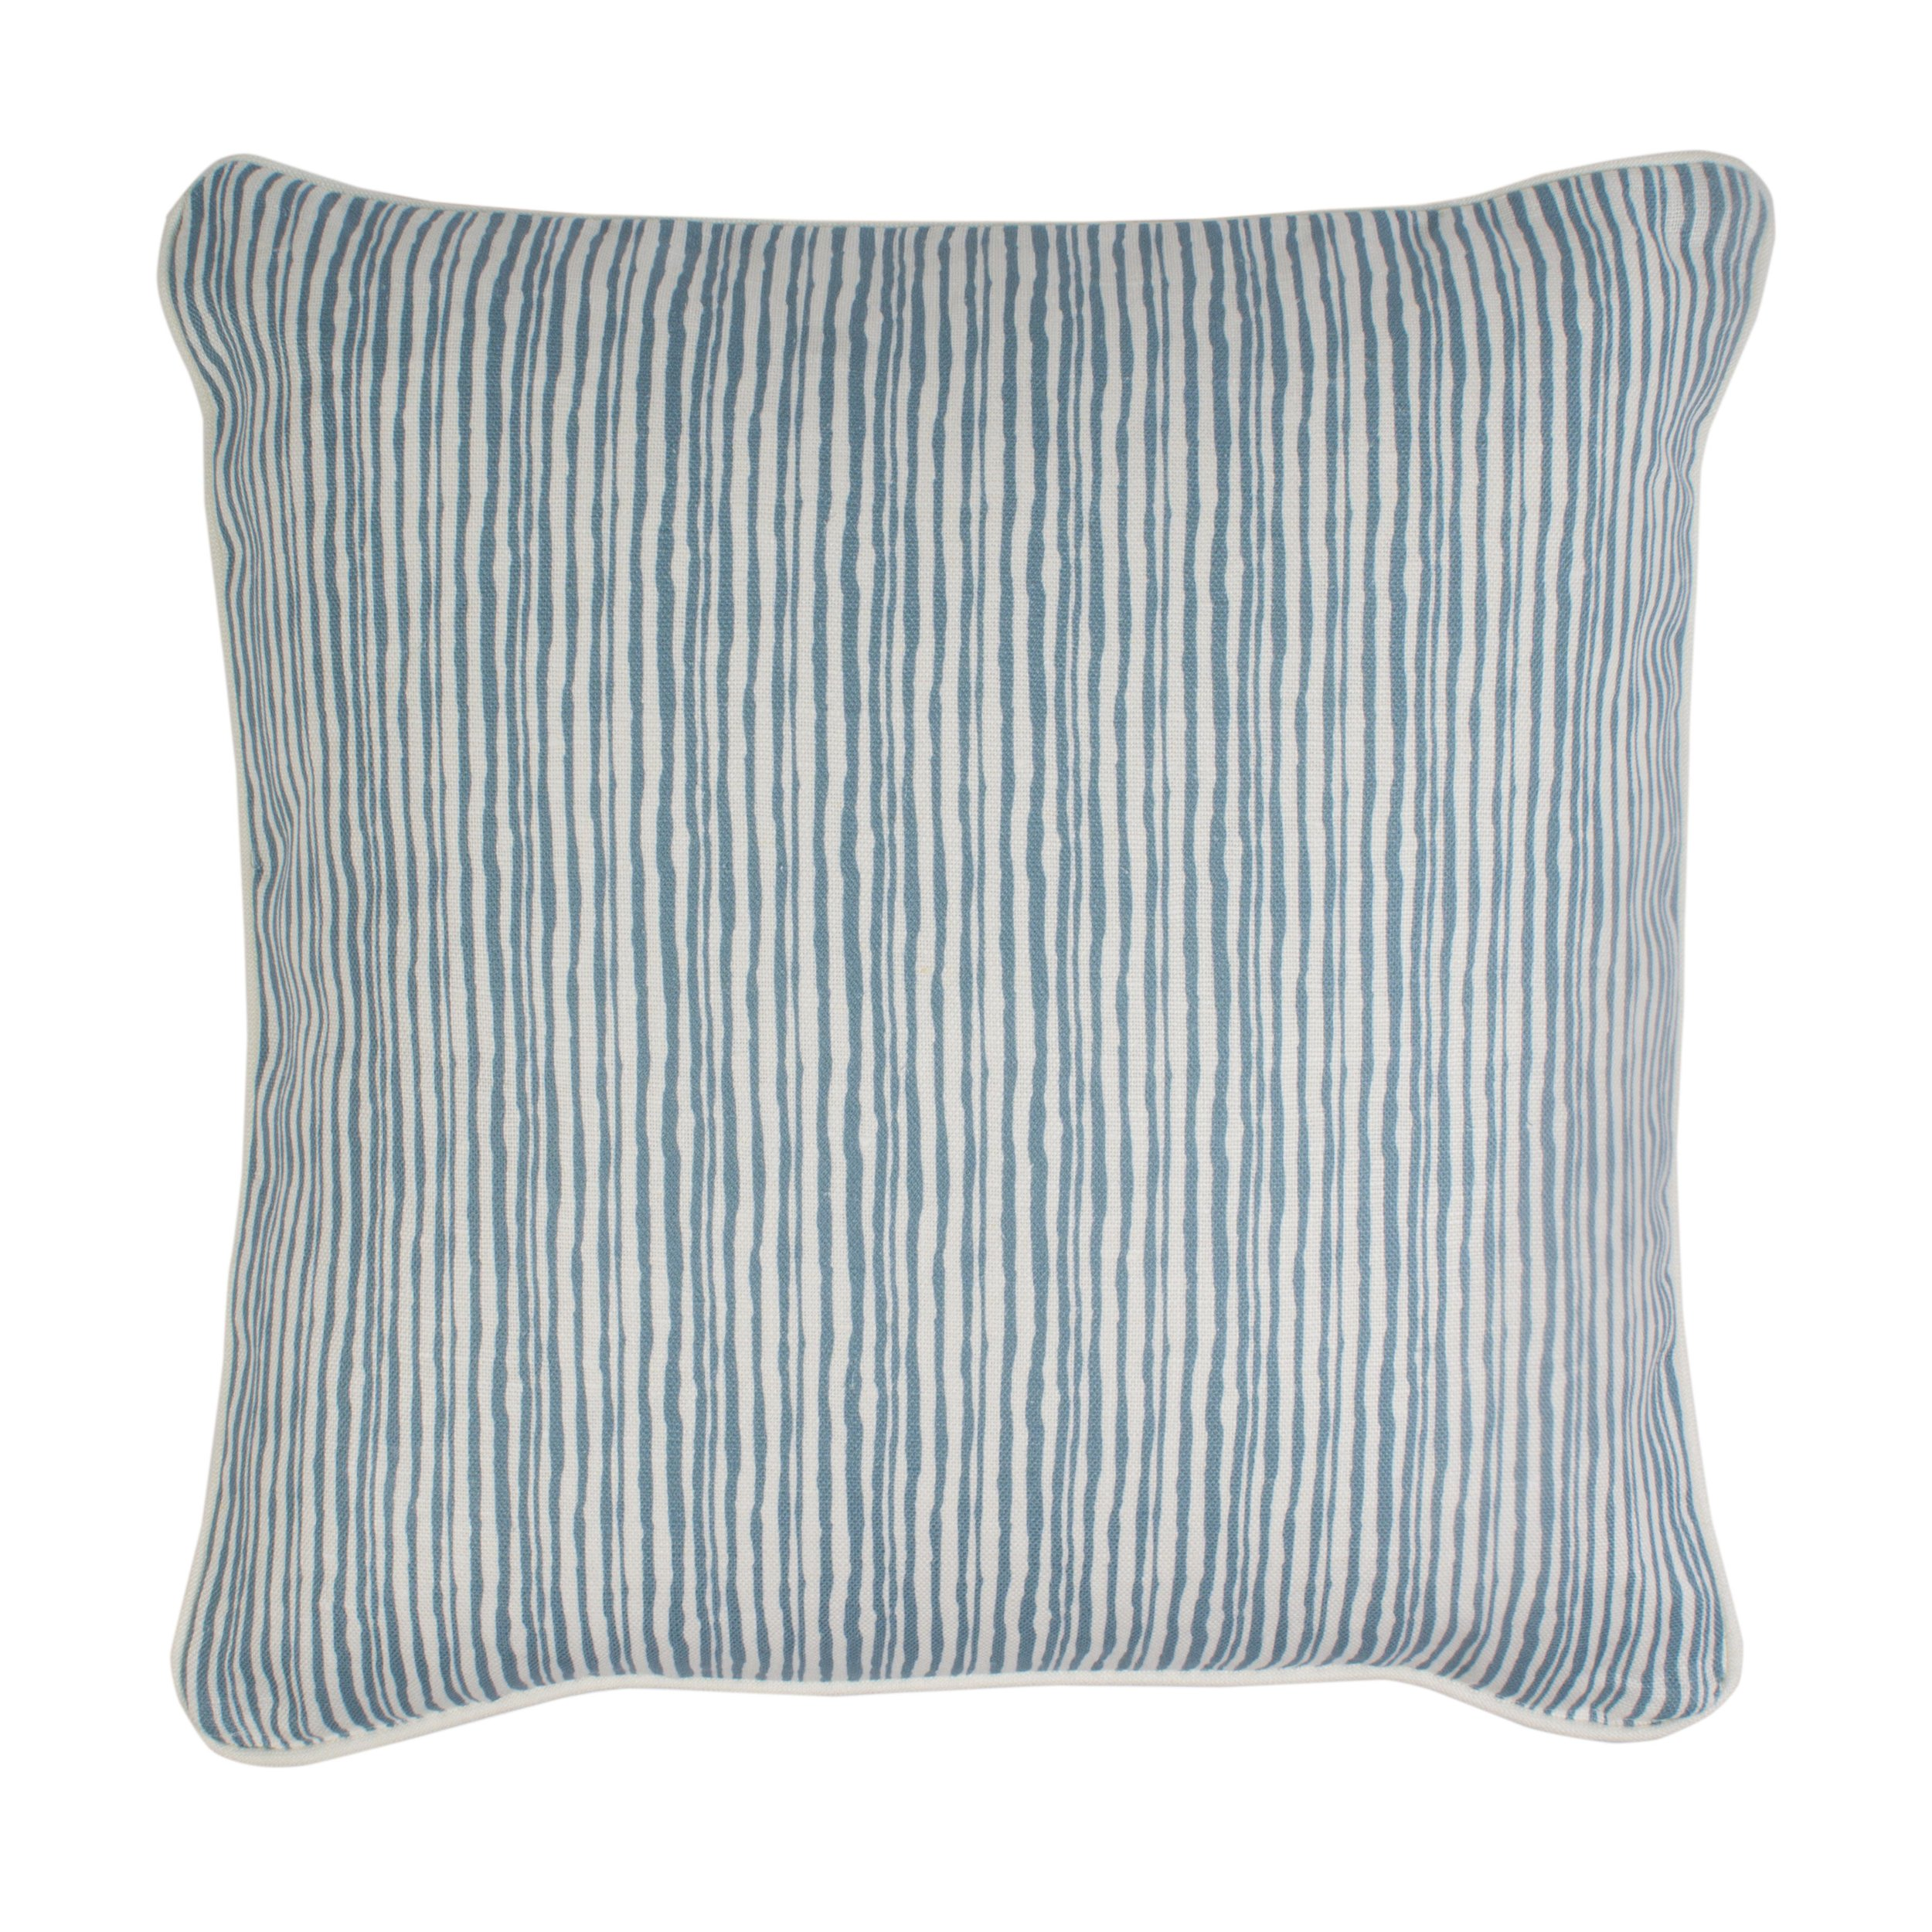 Pillow_bluestripe.jpg